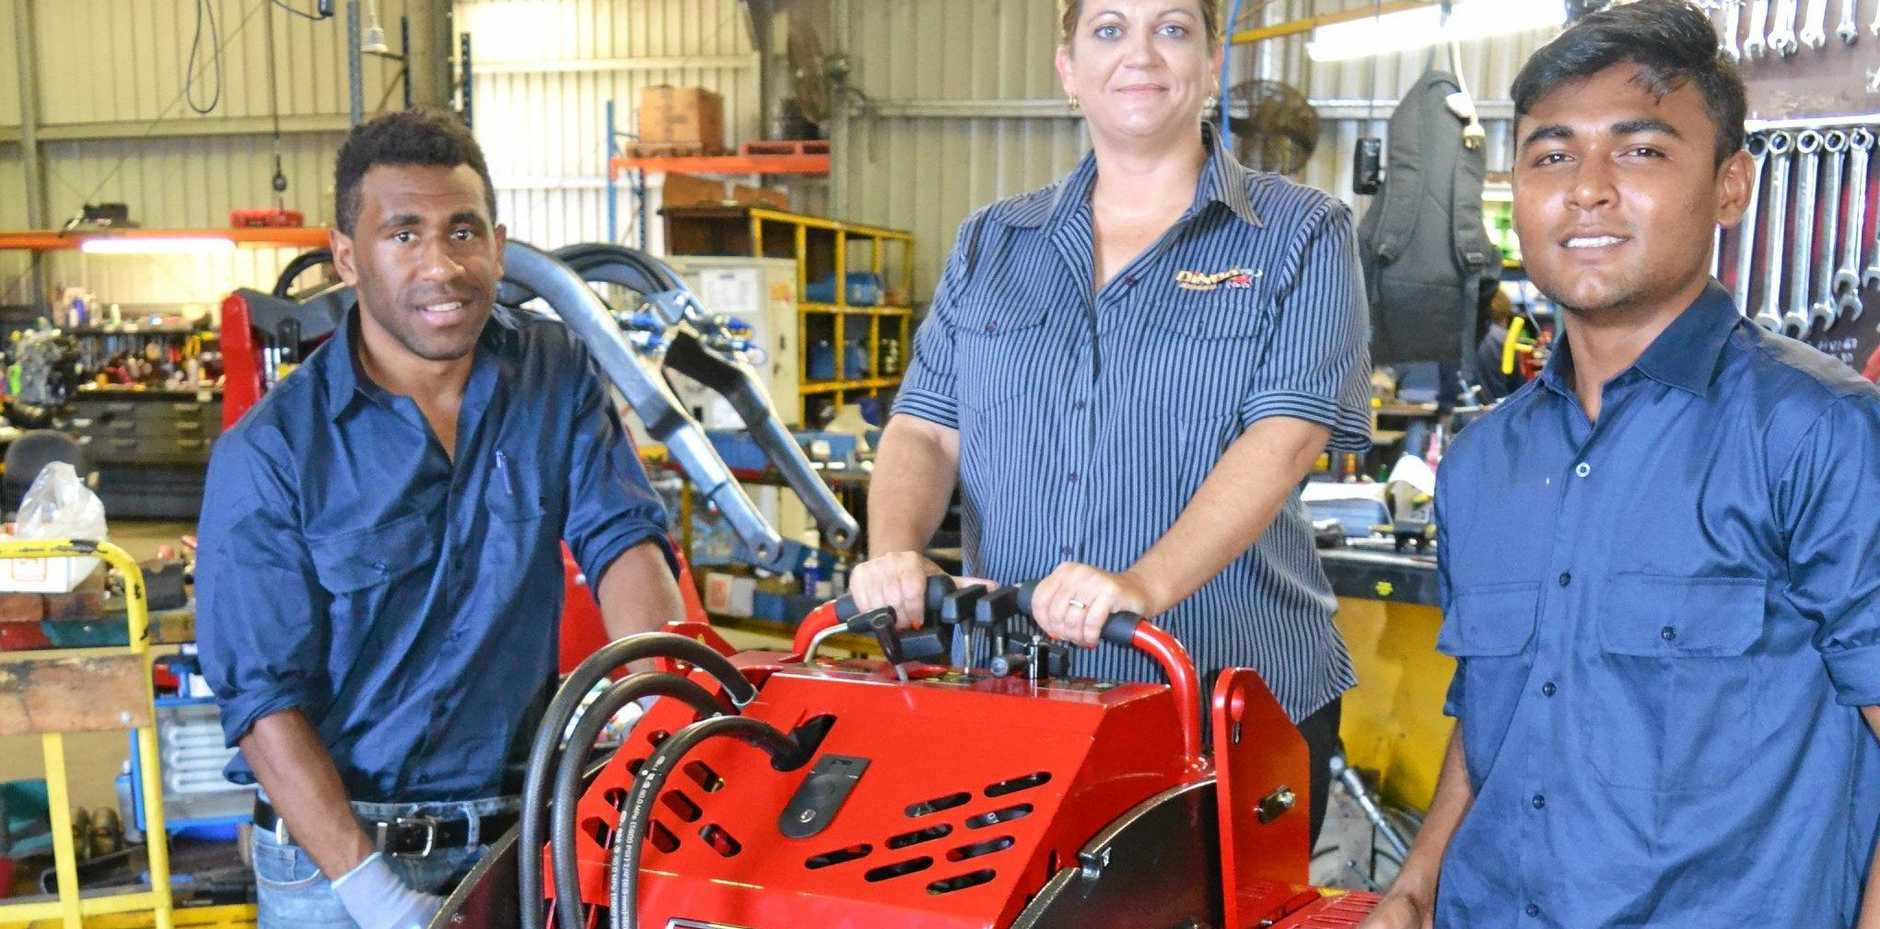 NEW START: Mike Gaur and Ashneel Dutt, pictured with HR manager Beth Morris on their first day of work at Dingo Australia in Dalby.